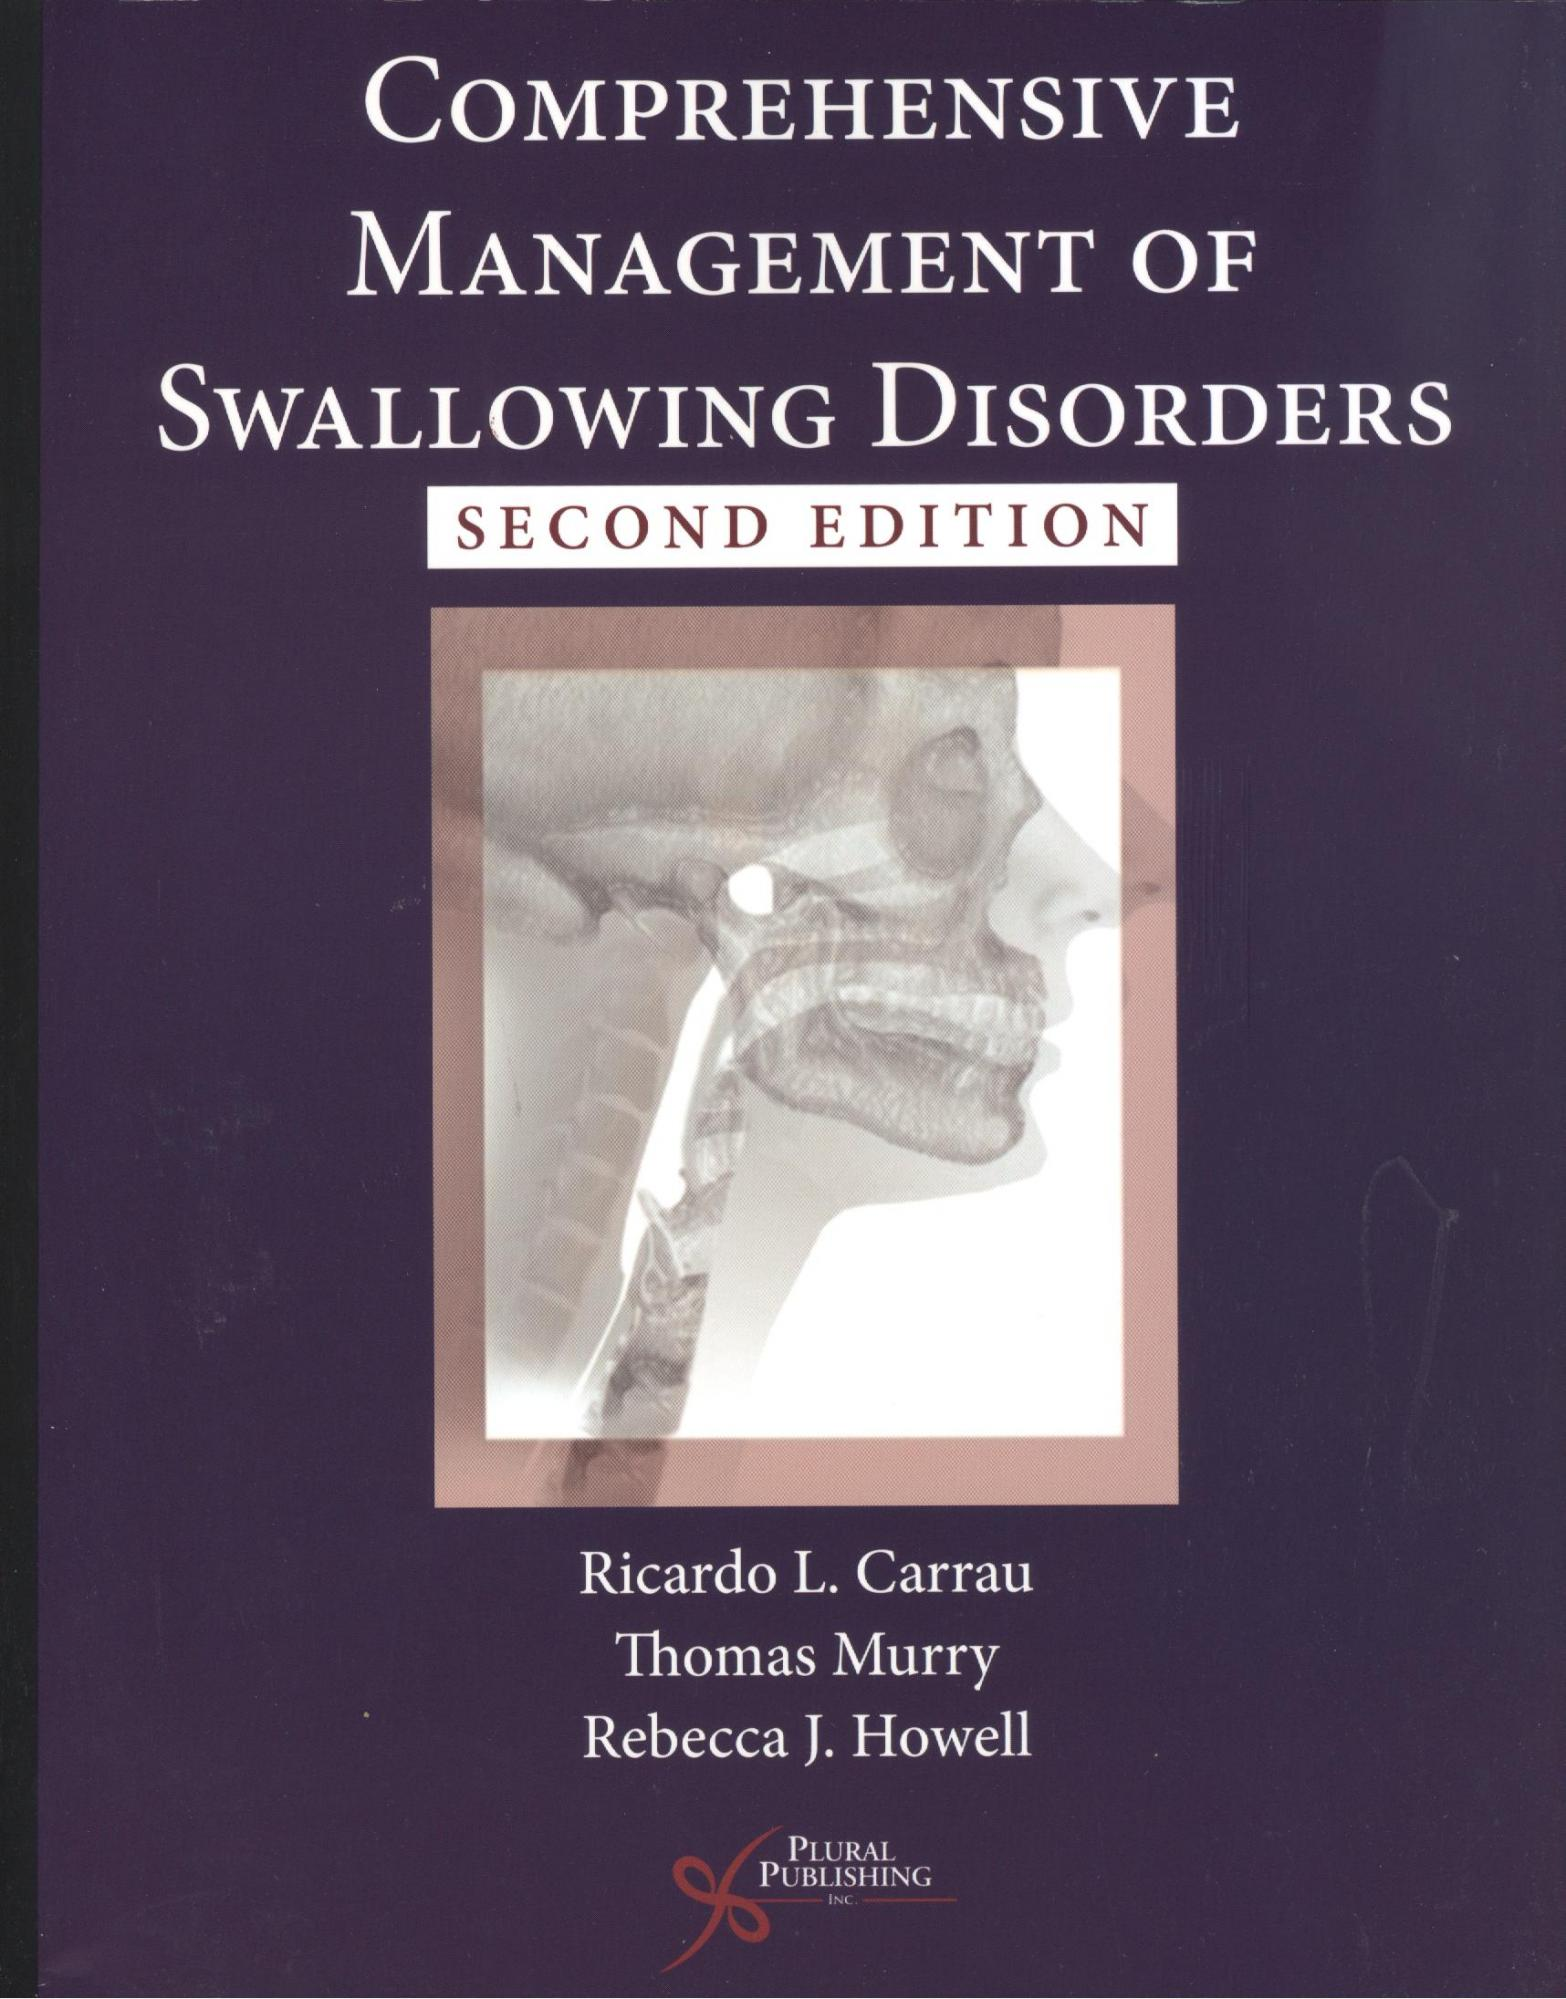 Comprehensive Management of Swallowing Disorders, 2nd ed.